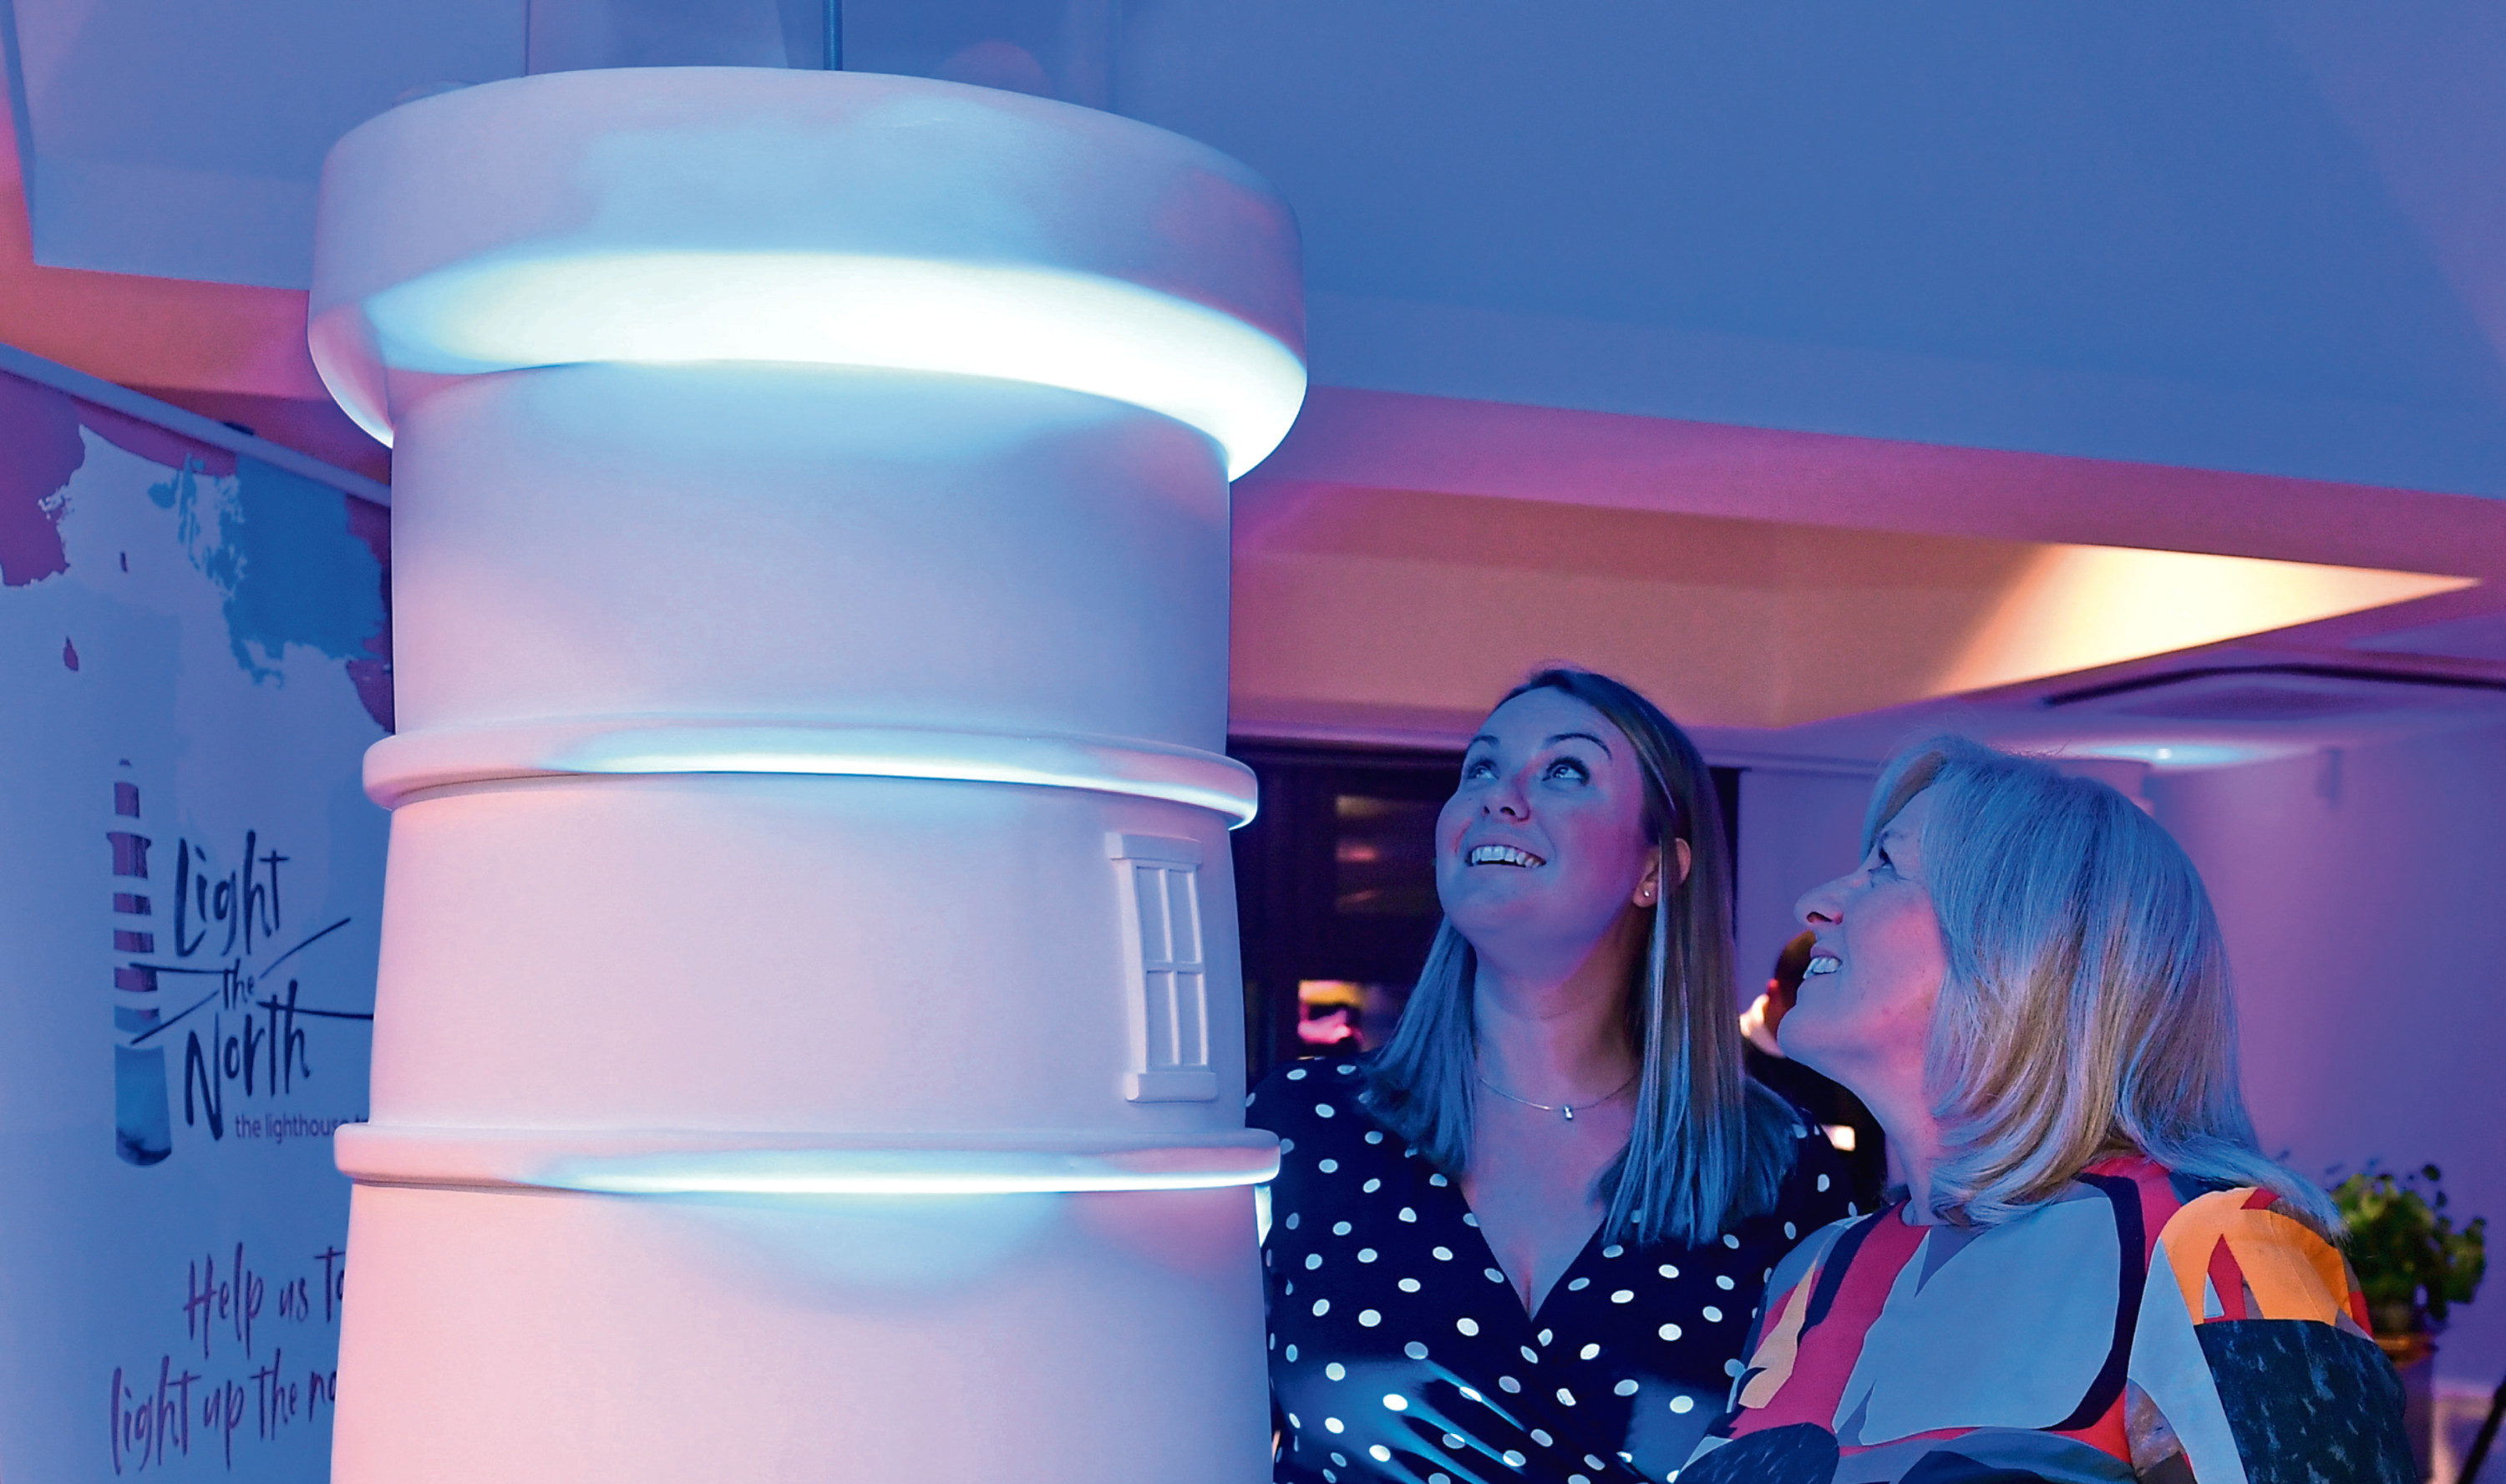 Clan and Wild in Art have postponed Light the North. Left, Fiona Fearnie head of income and project director of CLAN and Colette Backwell chief executive of Clan